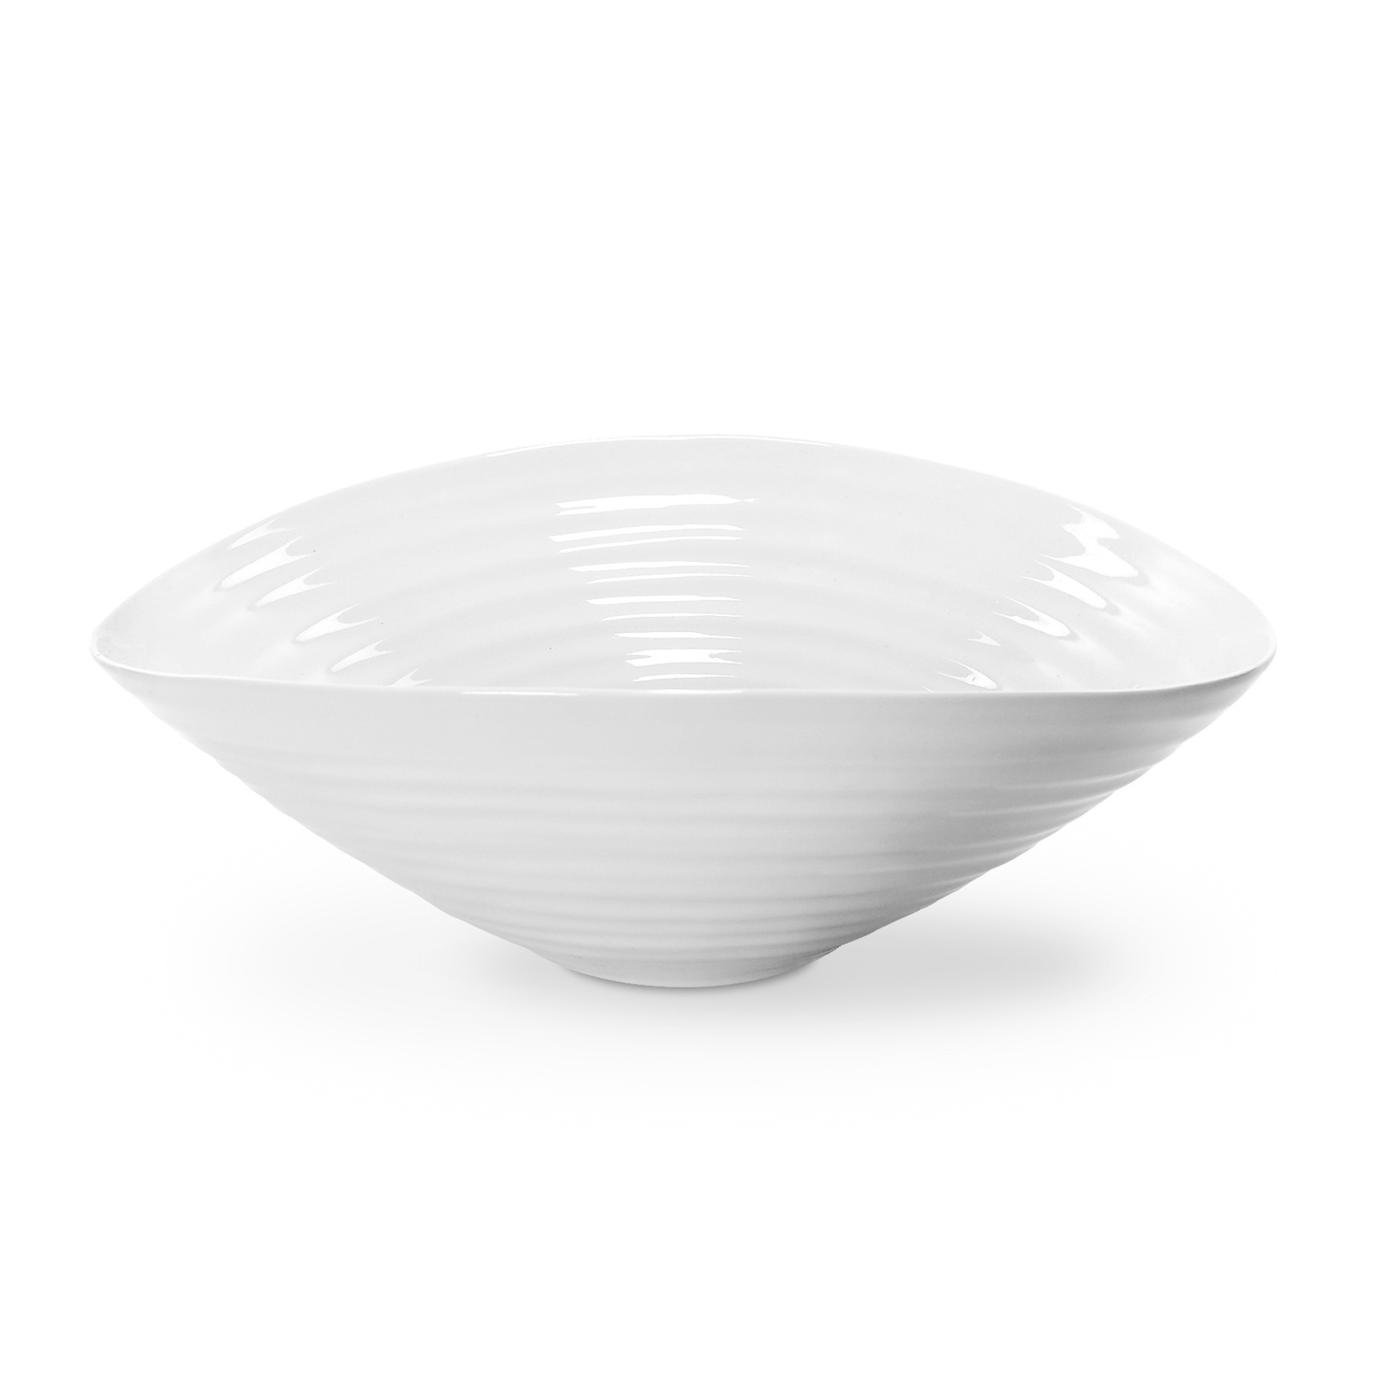 Portmeirion Sophie Conran White Large Salad Bowl